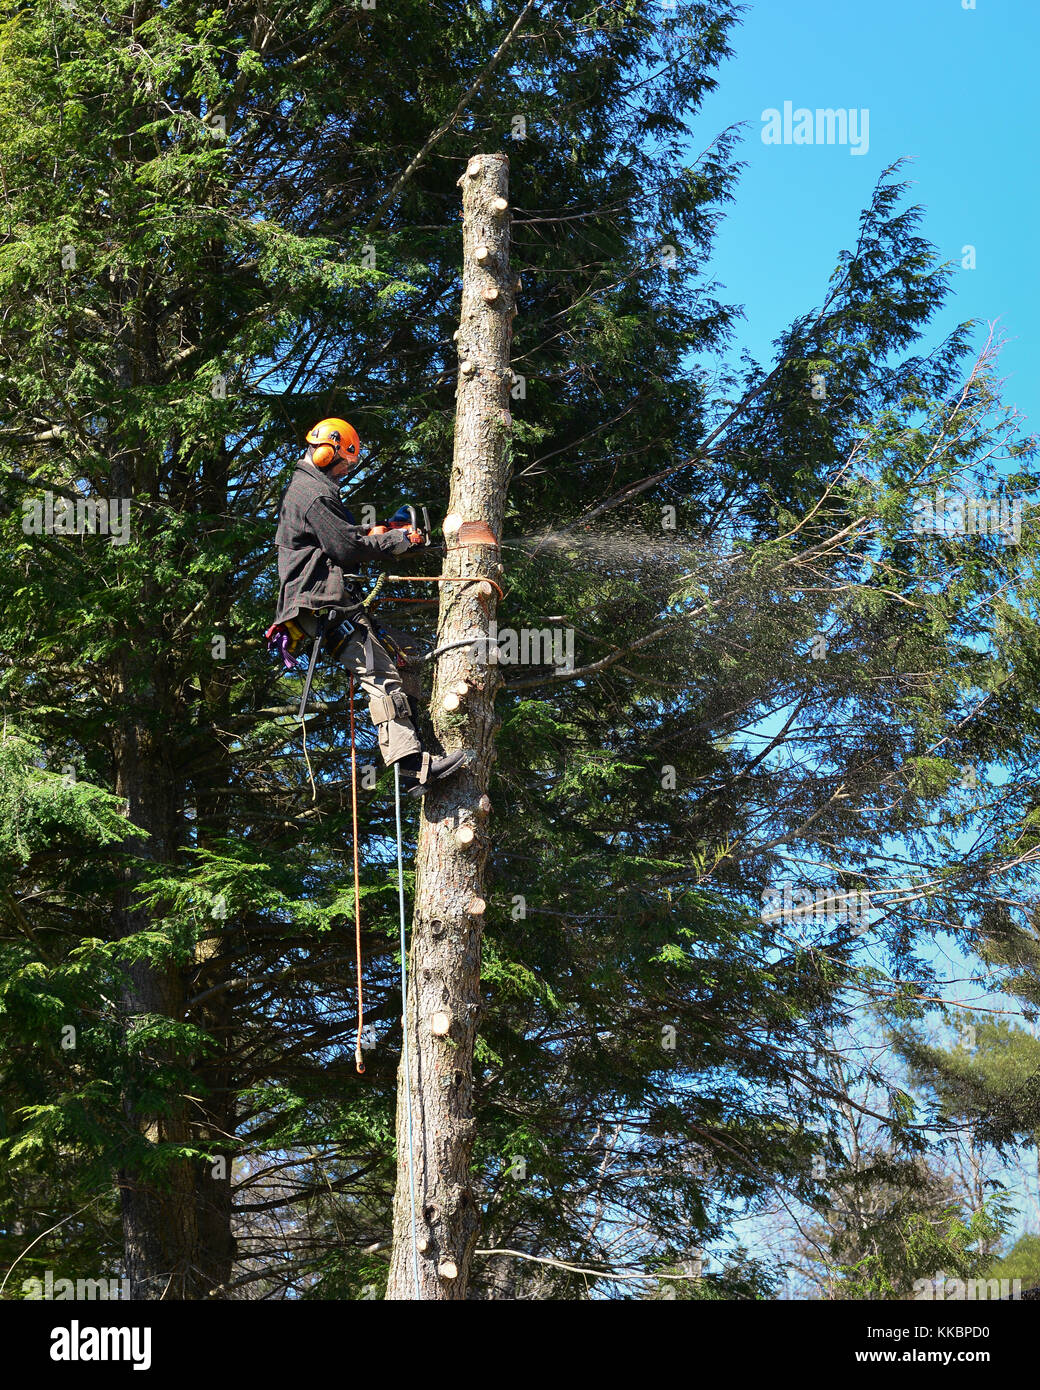 Professional arborist climbing a tall hemlock tree and cutting the bare trunk into sections. - Stock Image